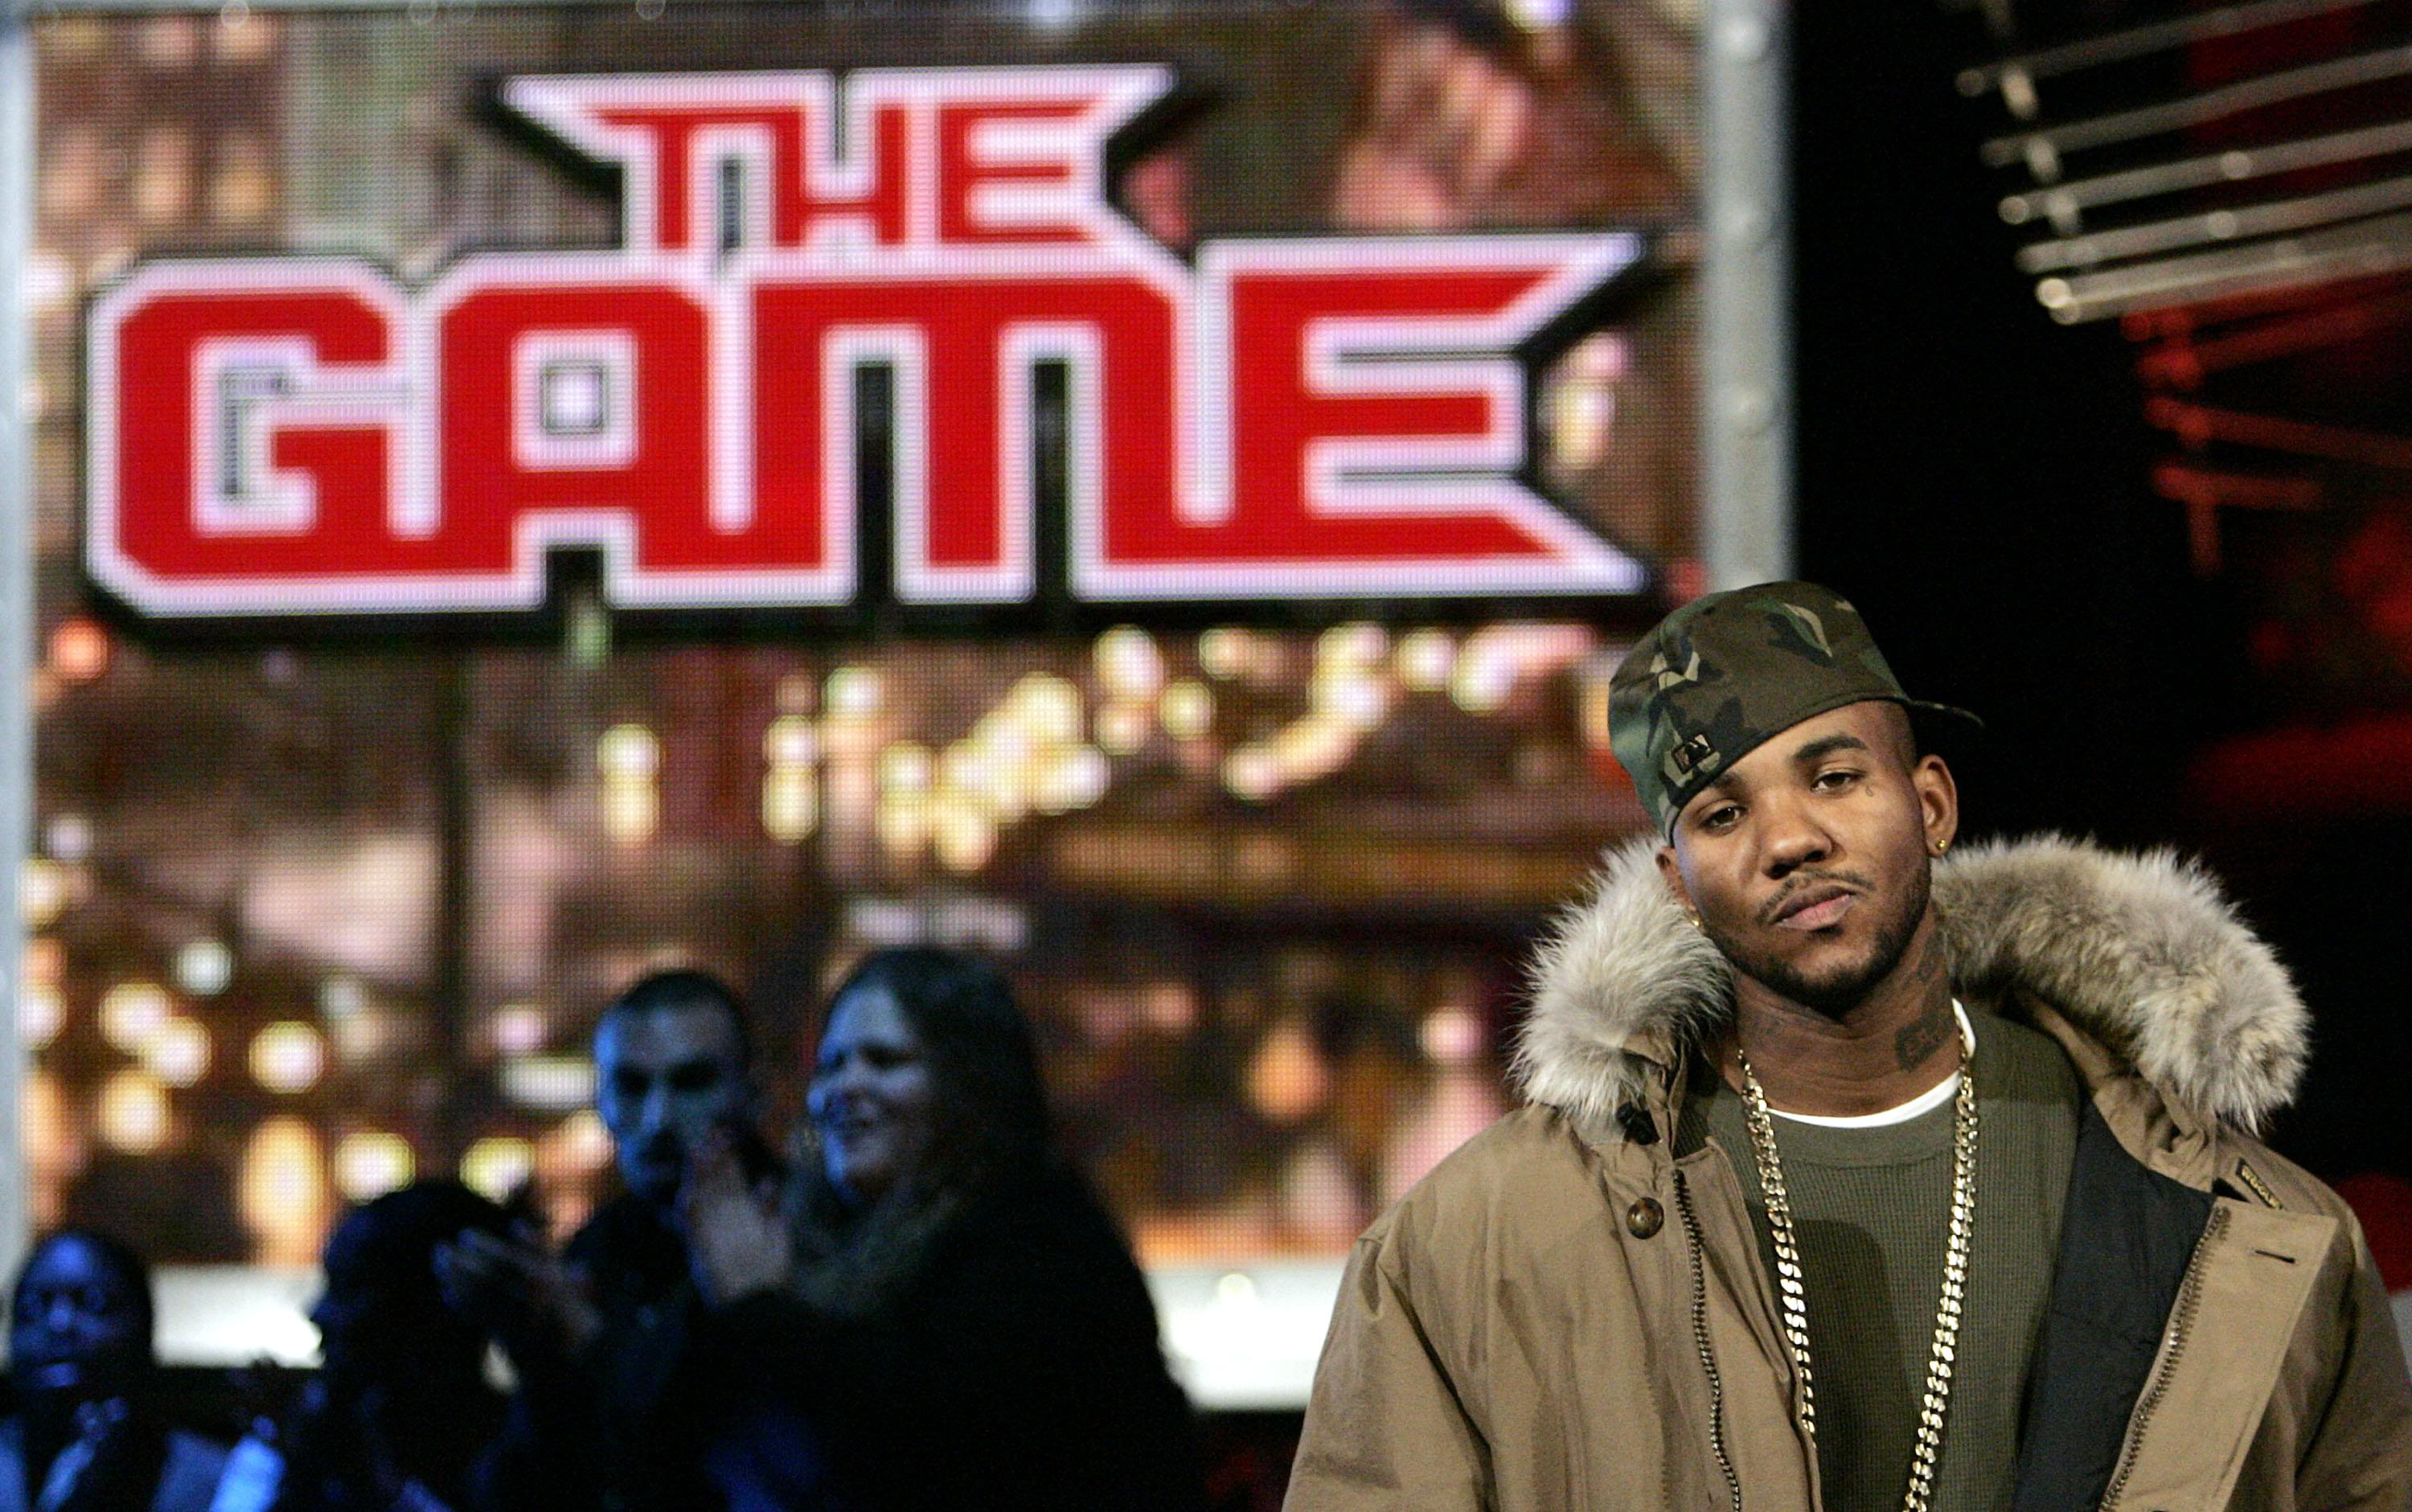 The Game Says the Music Industry Will Be Exposed in New Album